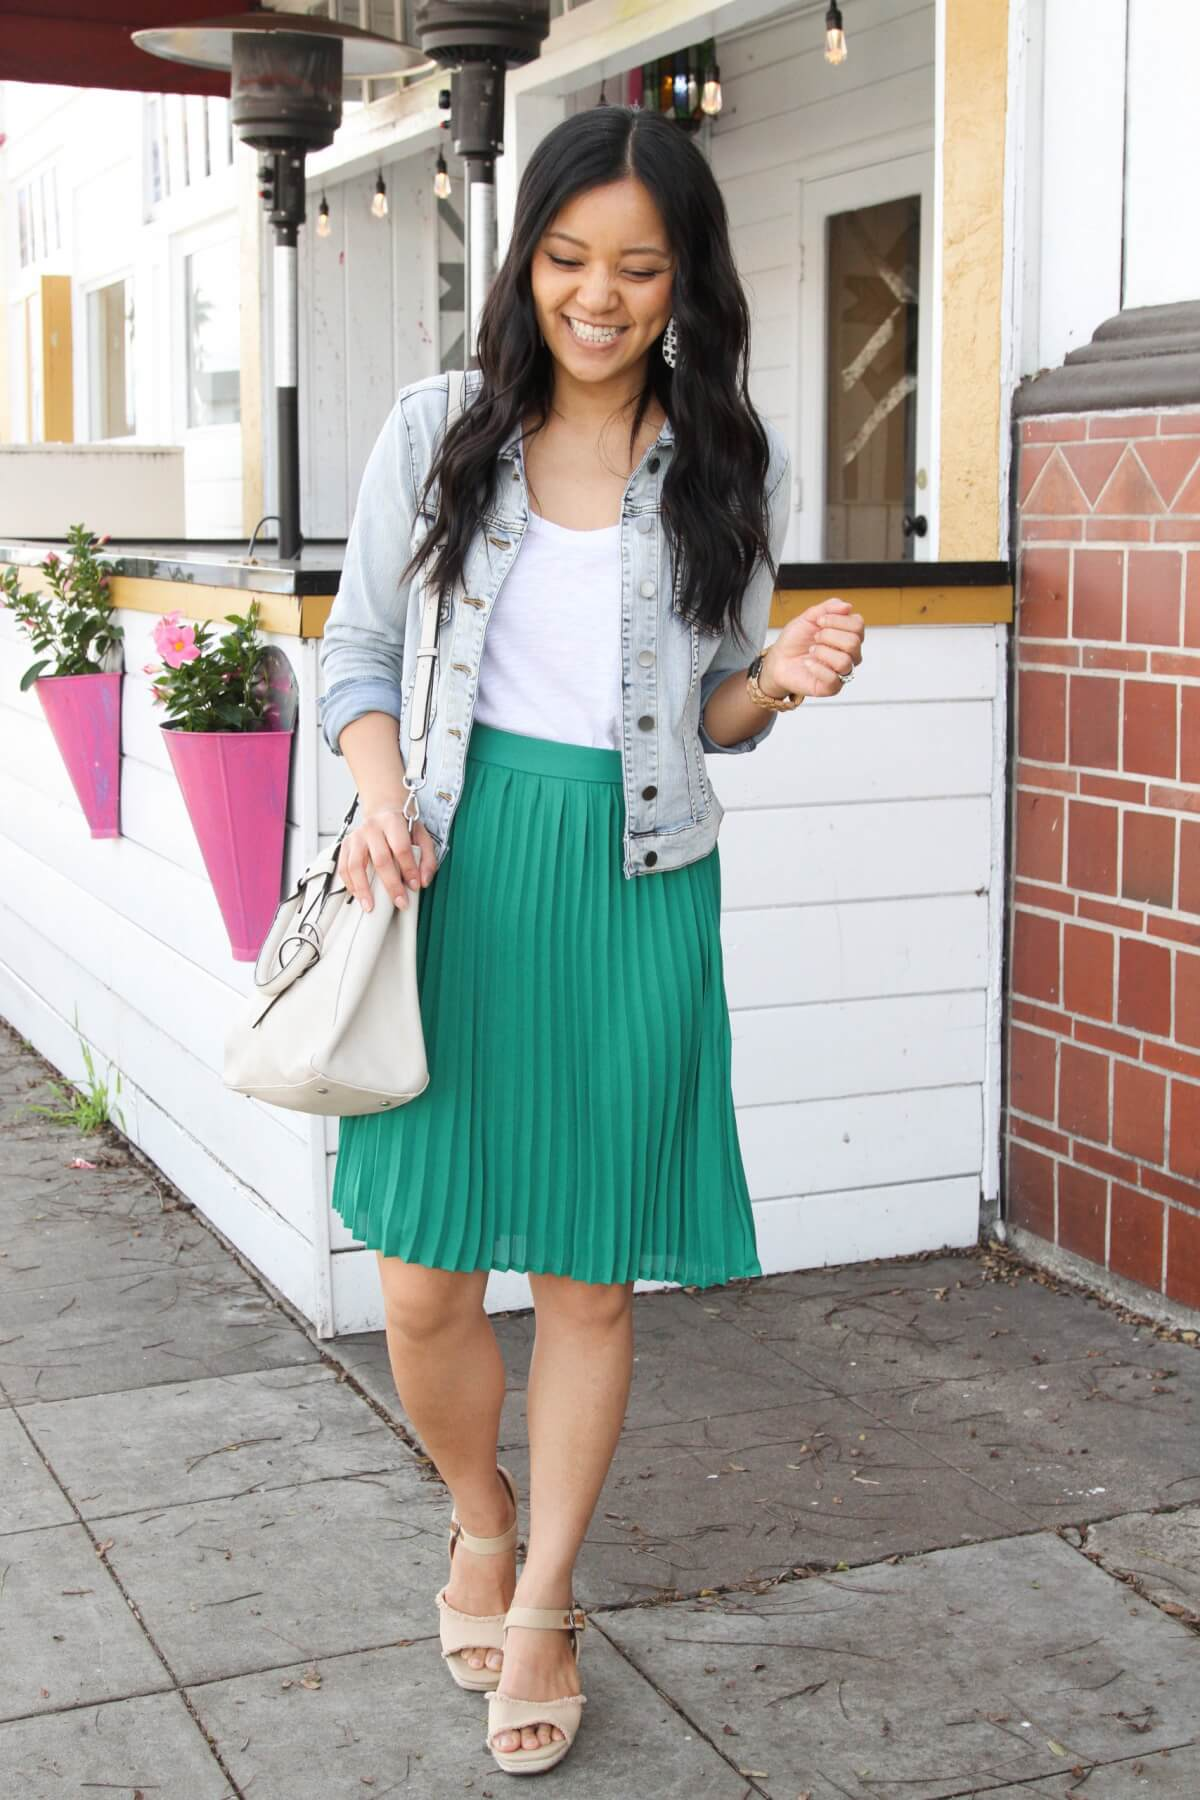 Classic Outfit: denim jacket + white tee + green pleated skirt + nude heels + white and black earrings + white bag